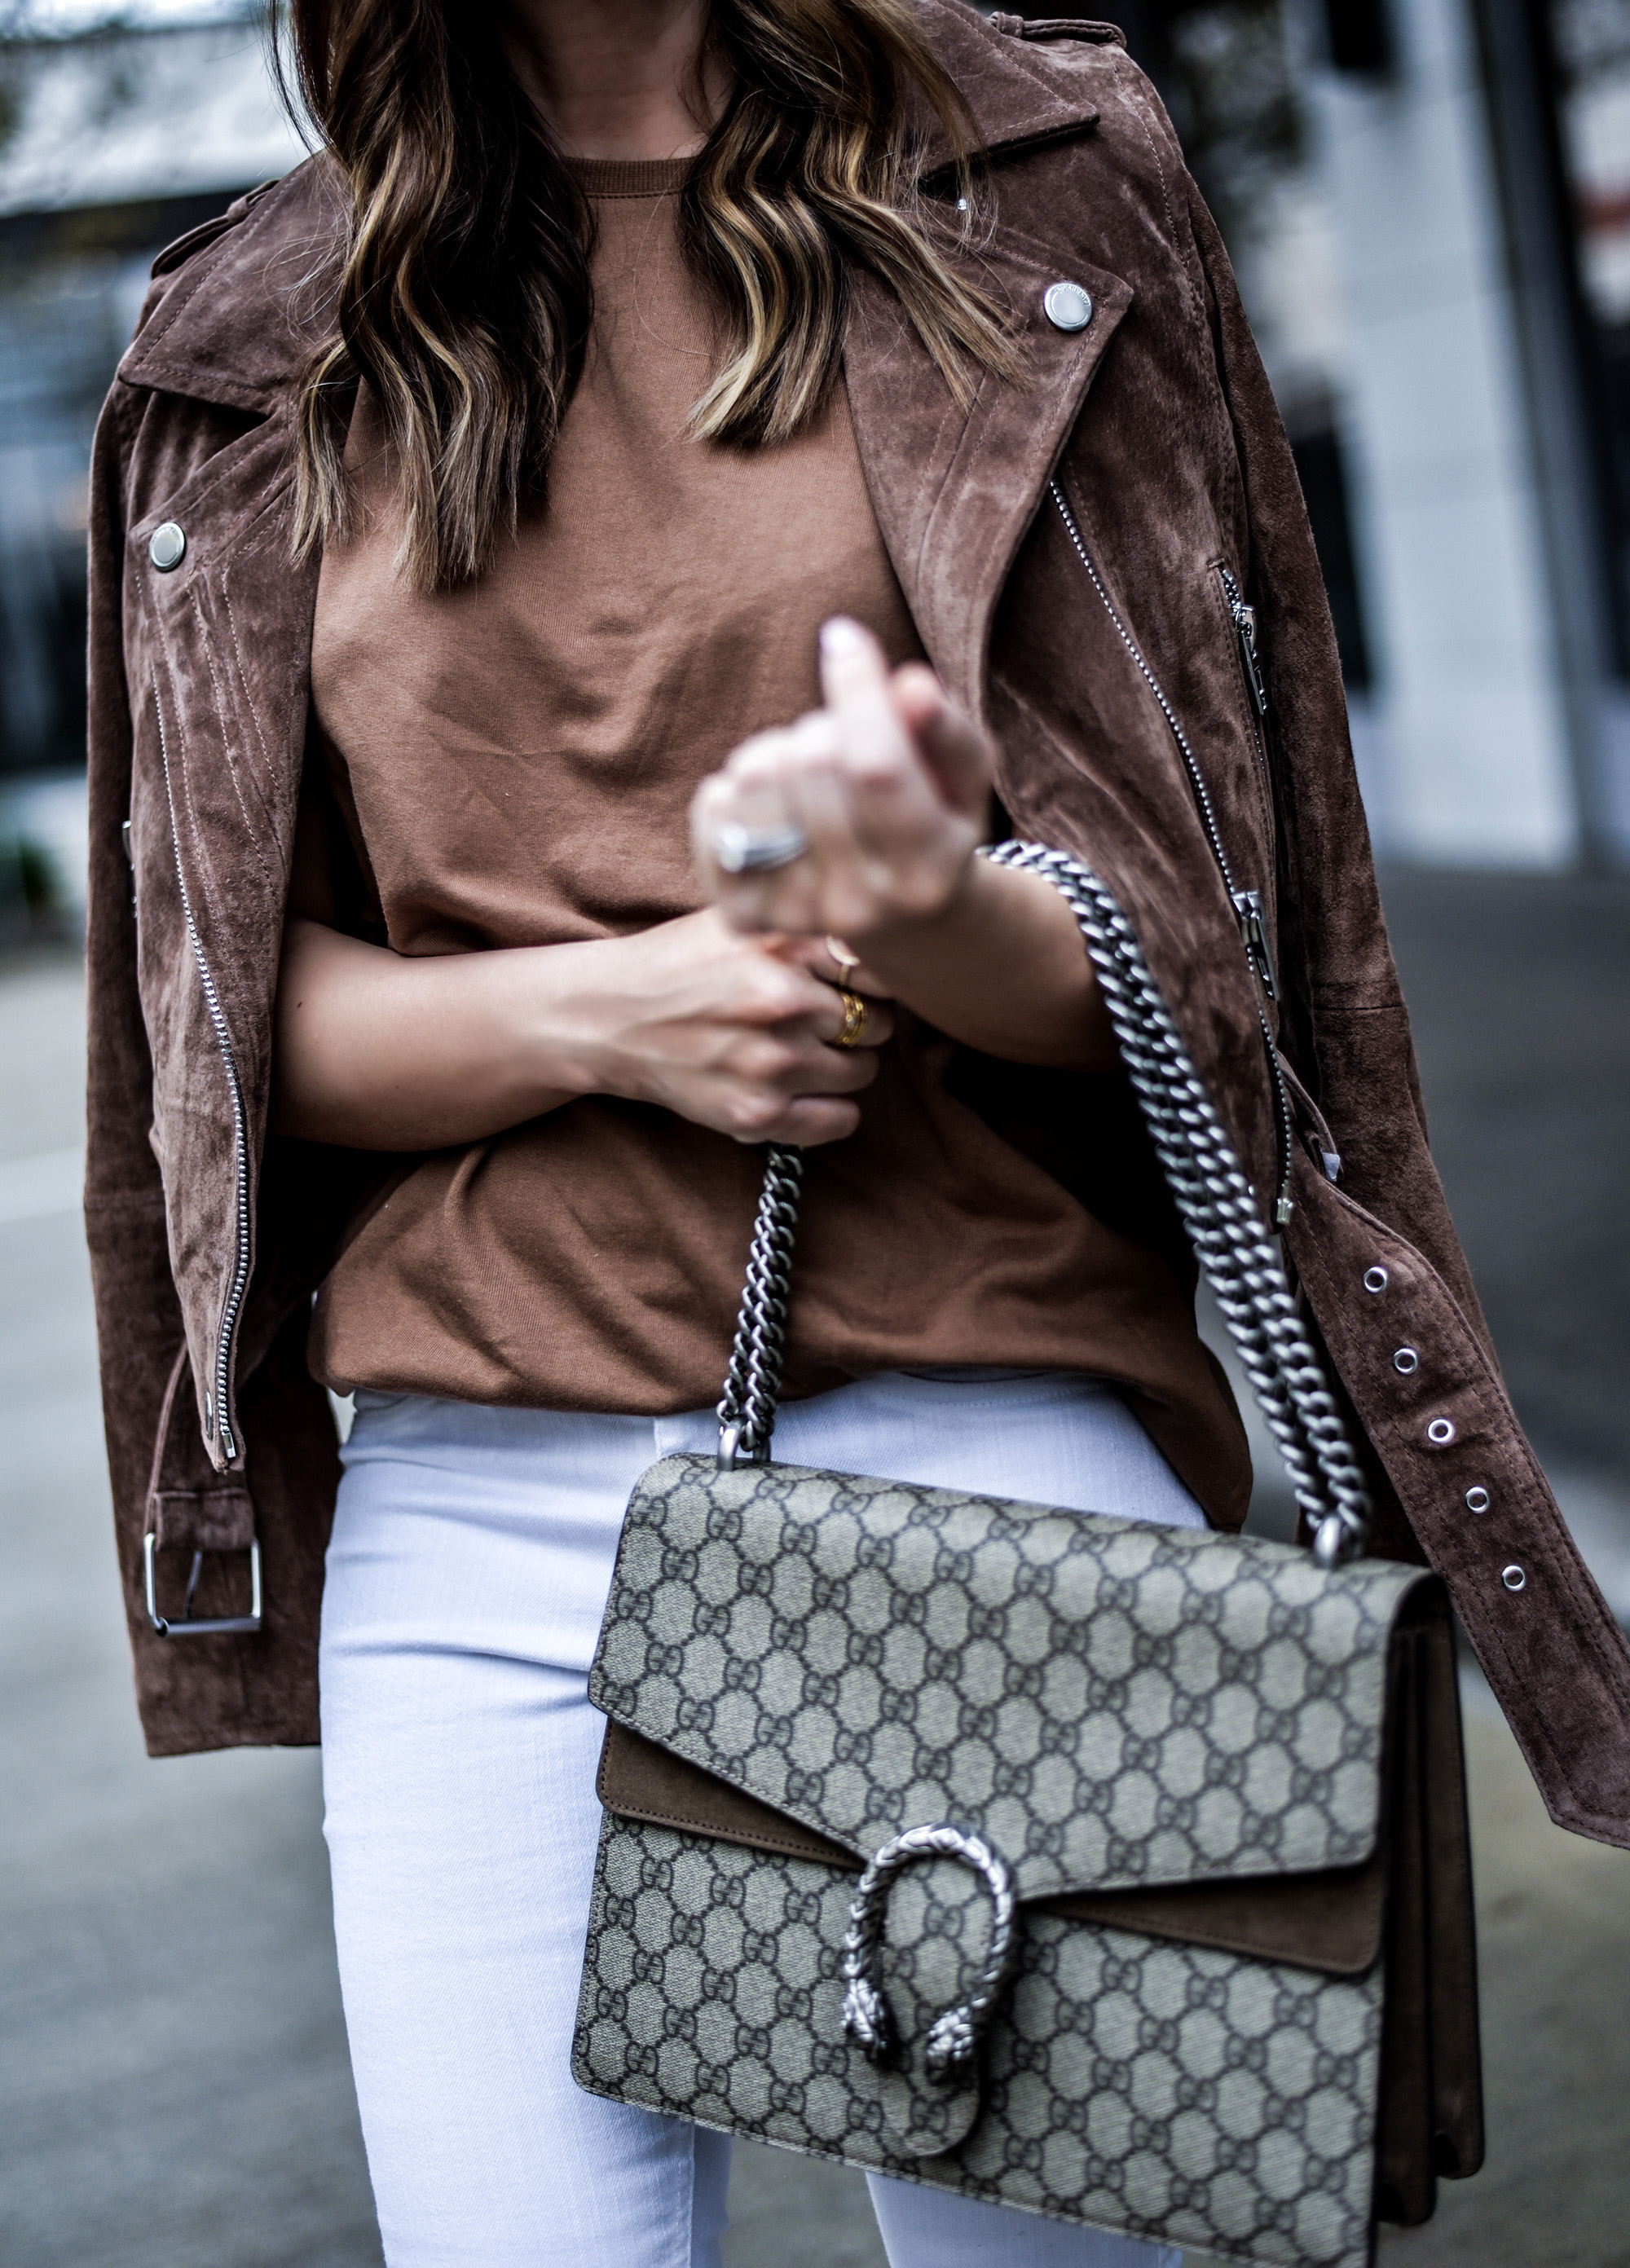 Tiffany Jais the Houston Style blogger of Flaunt and Center wearing a Blank NYC suede moto jacket with an ASOS top, white skinny jeans, and a Gucci Dionysus bag | what's trending in women's fashion